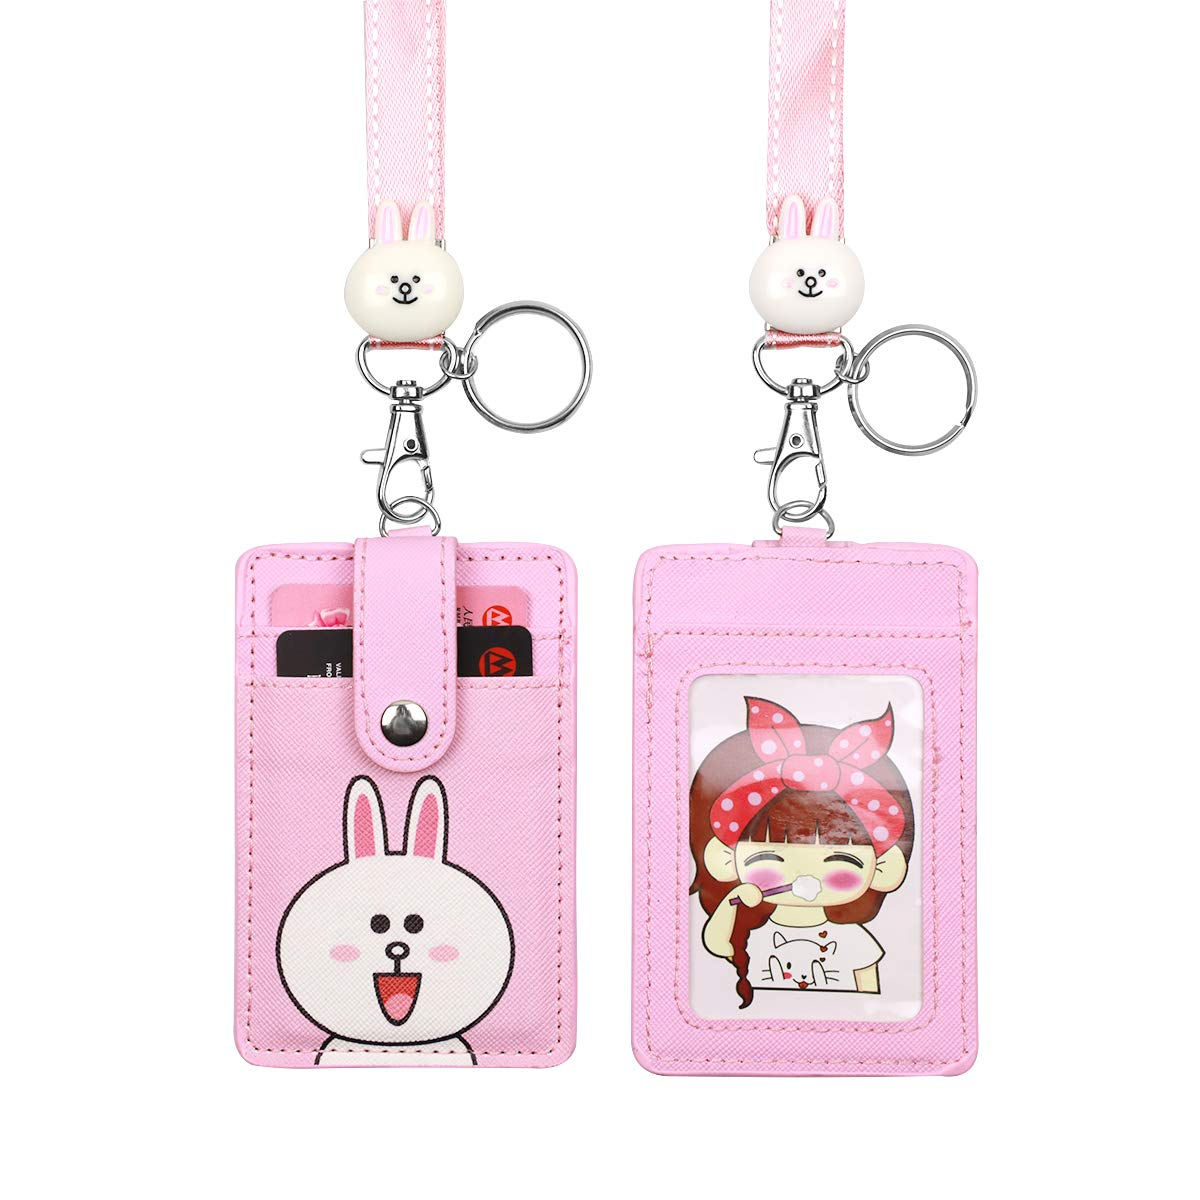 Cute Neck Pouch Card Case ID Badge Holder Cartoon Lanyard Keychain for Teens HASFINE